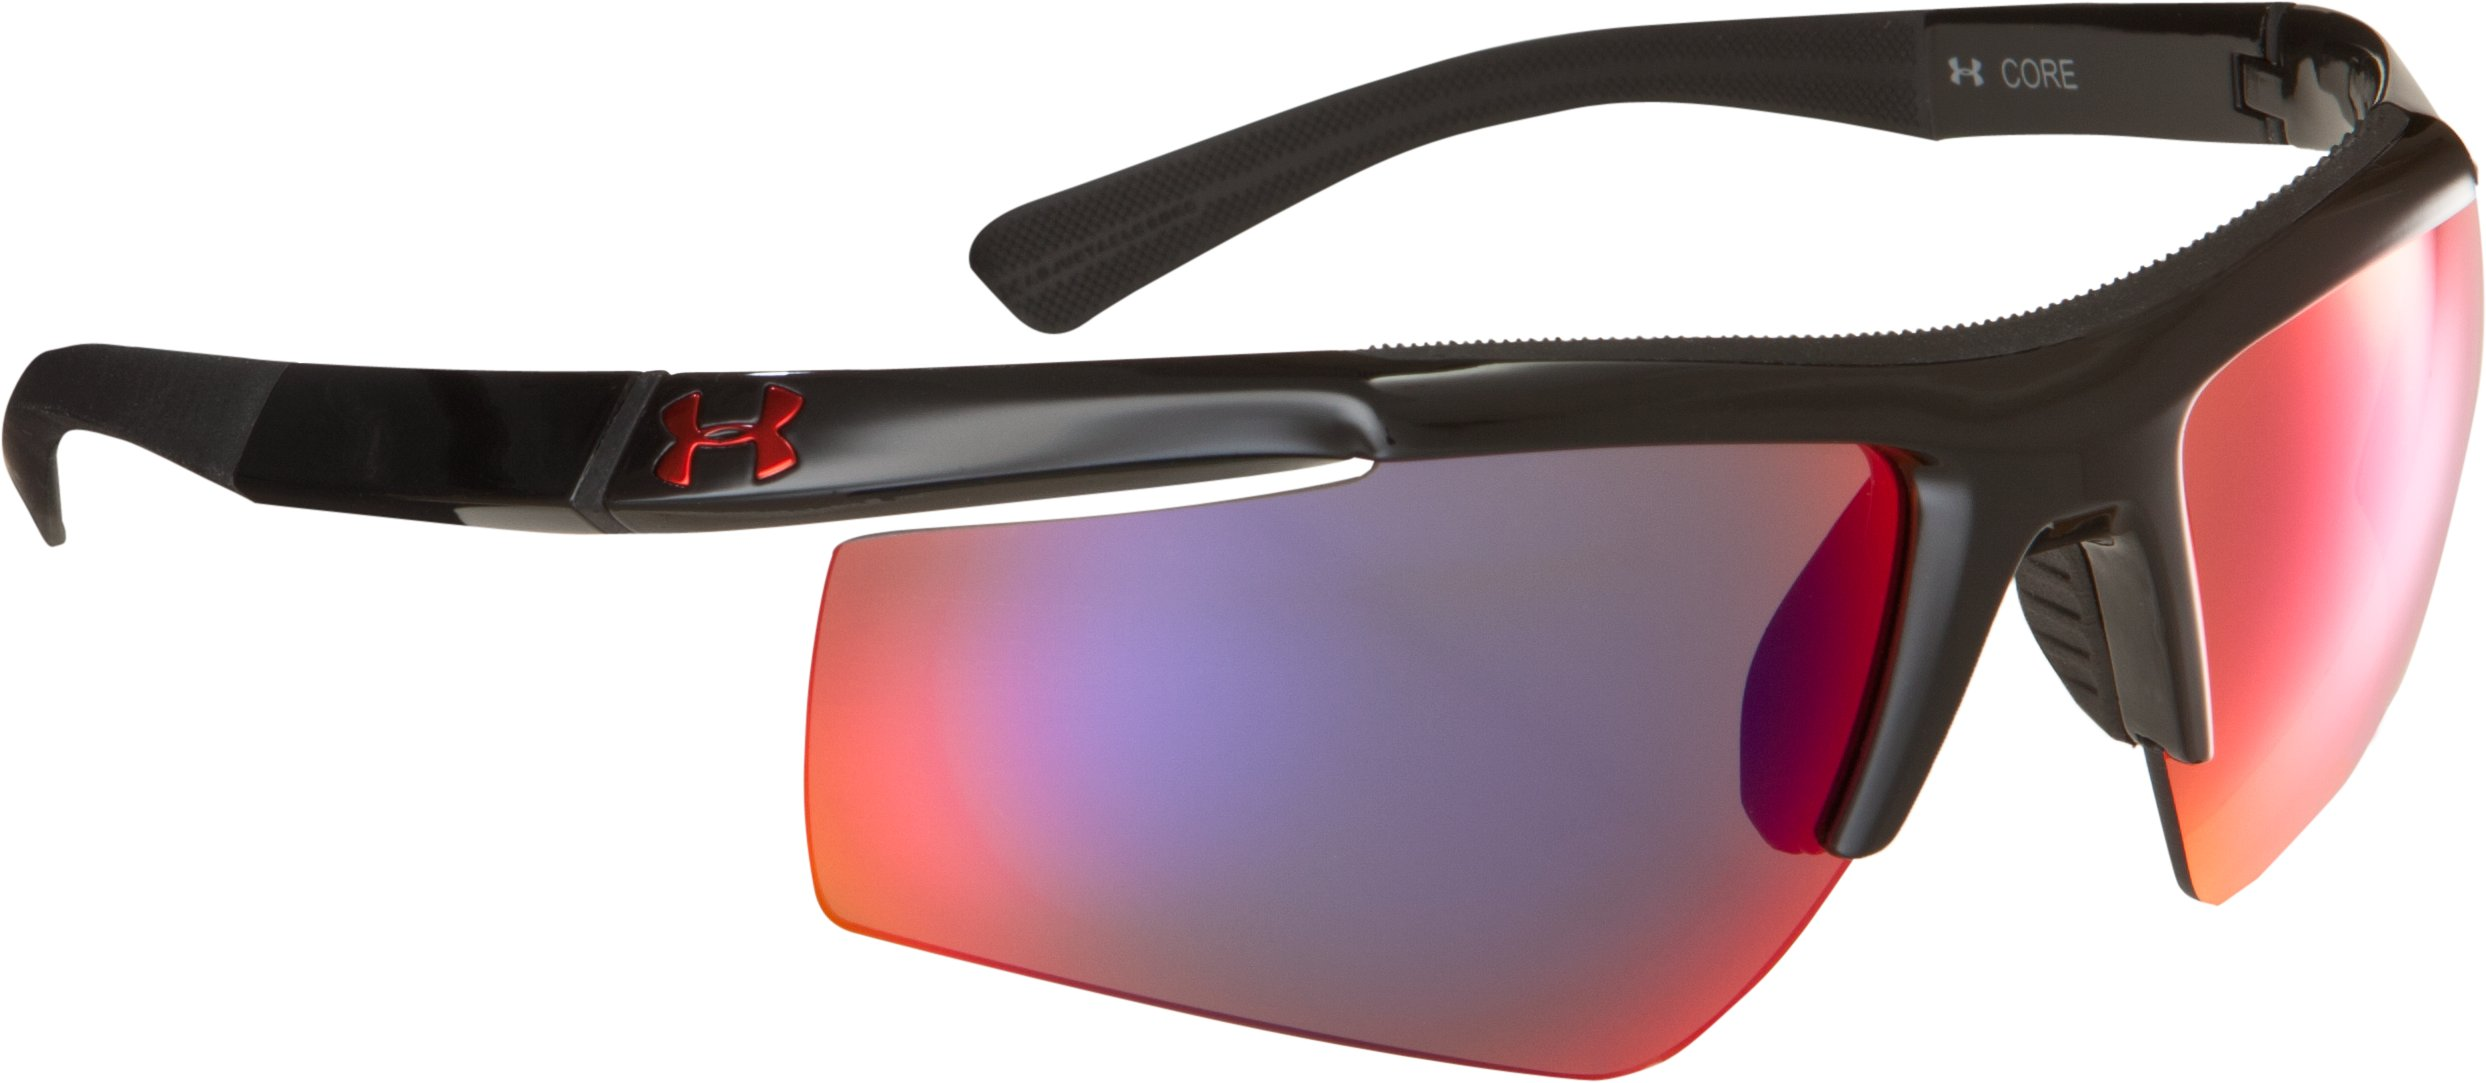 UA Core Sunglasses, Shiny Black